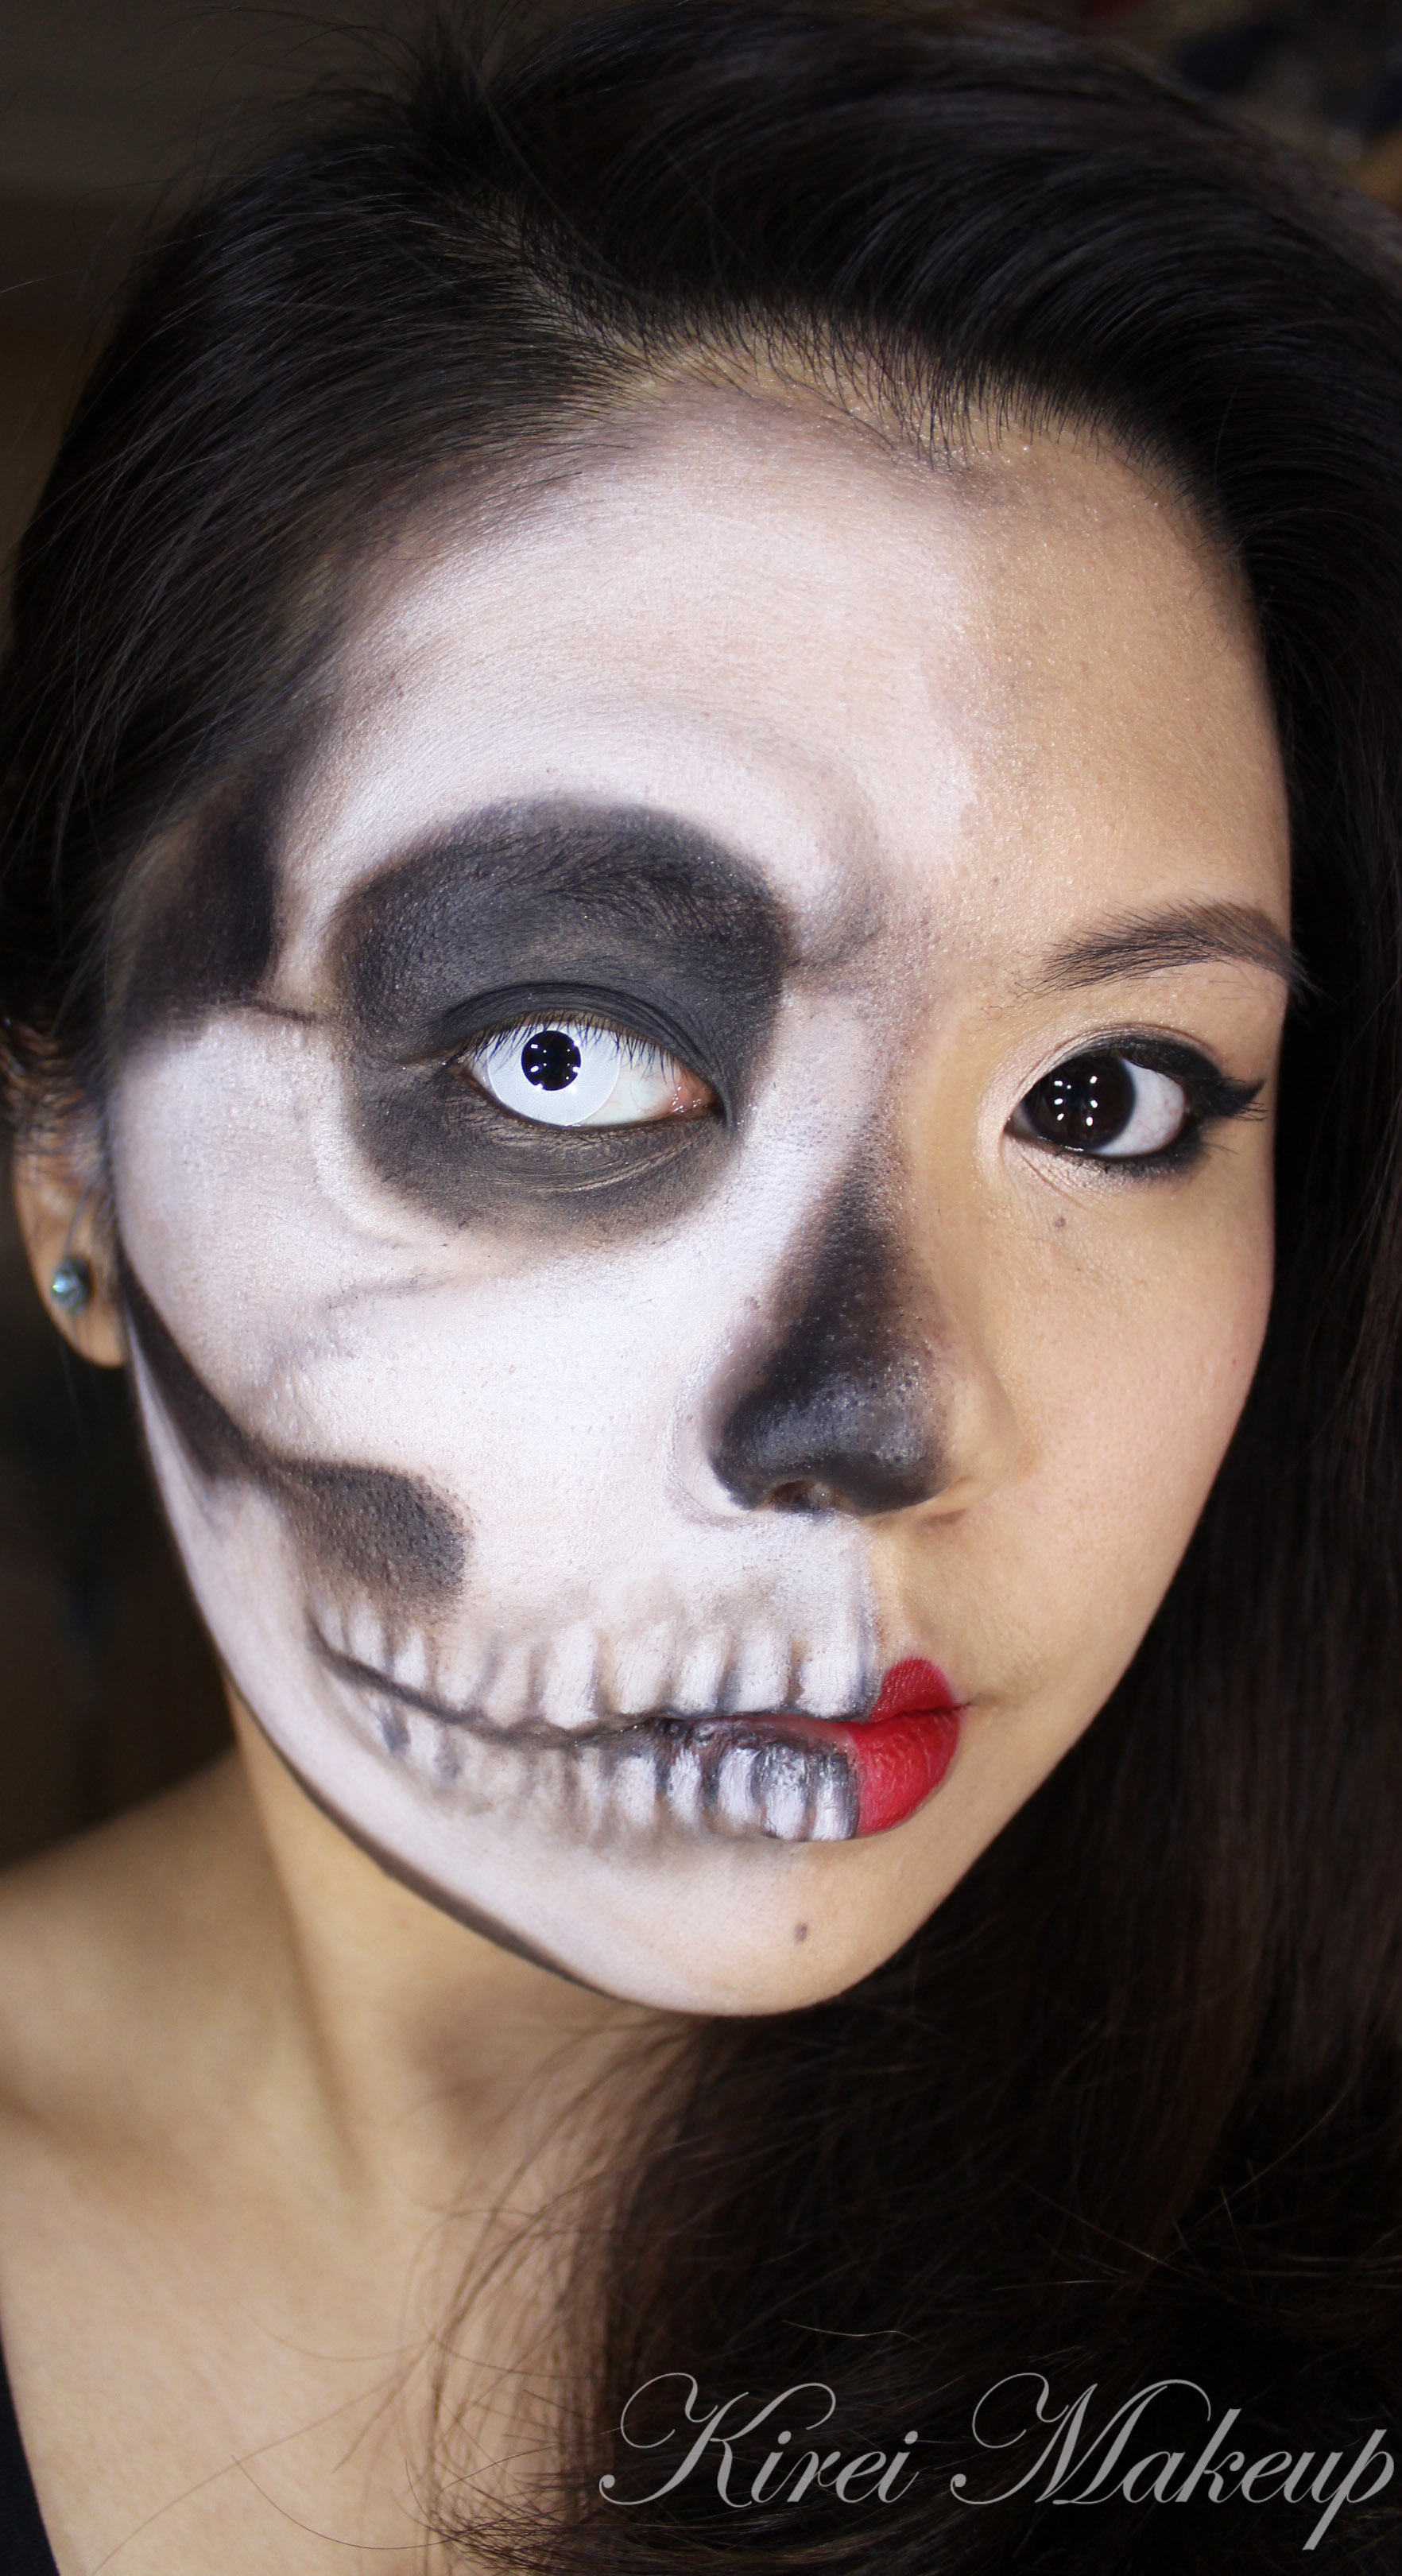 Face Makeup Tutorial For Beginners: Half And Half